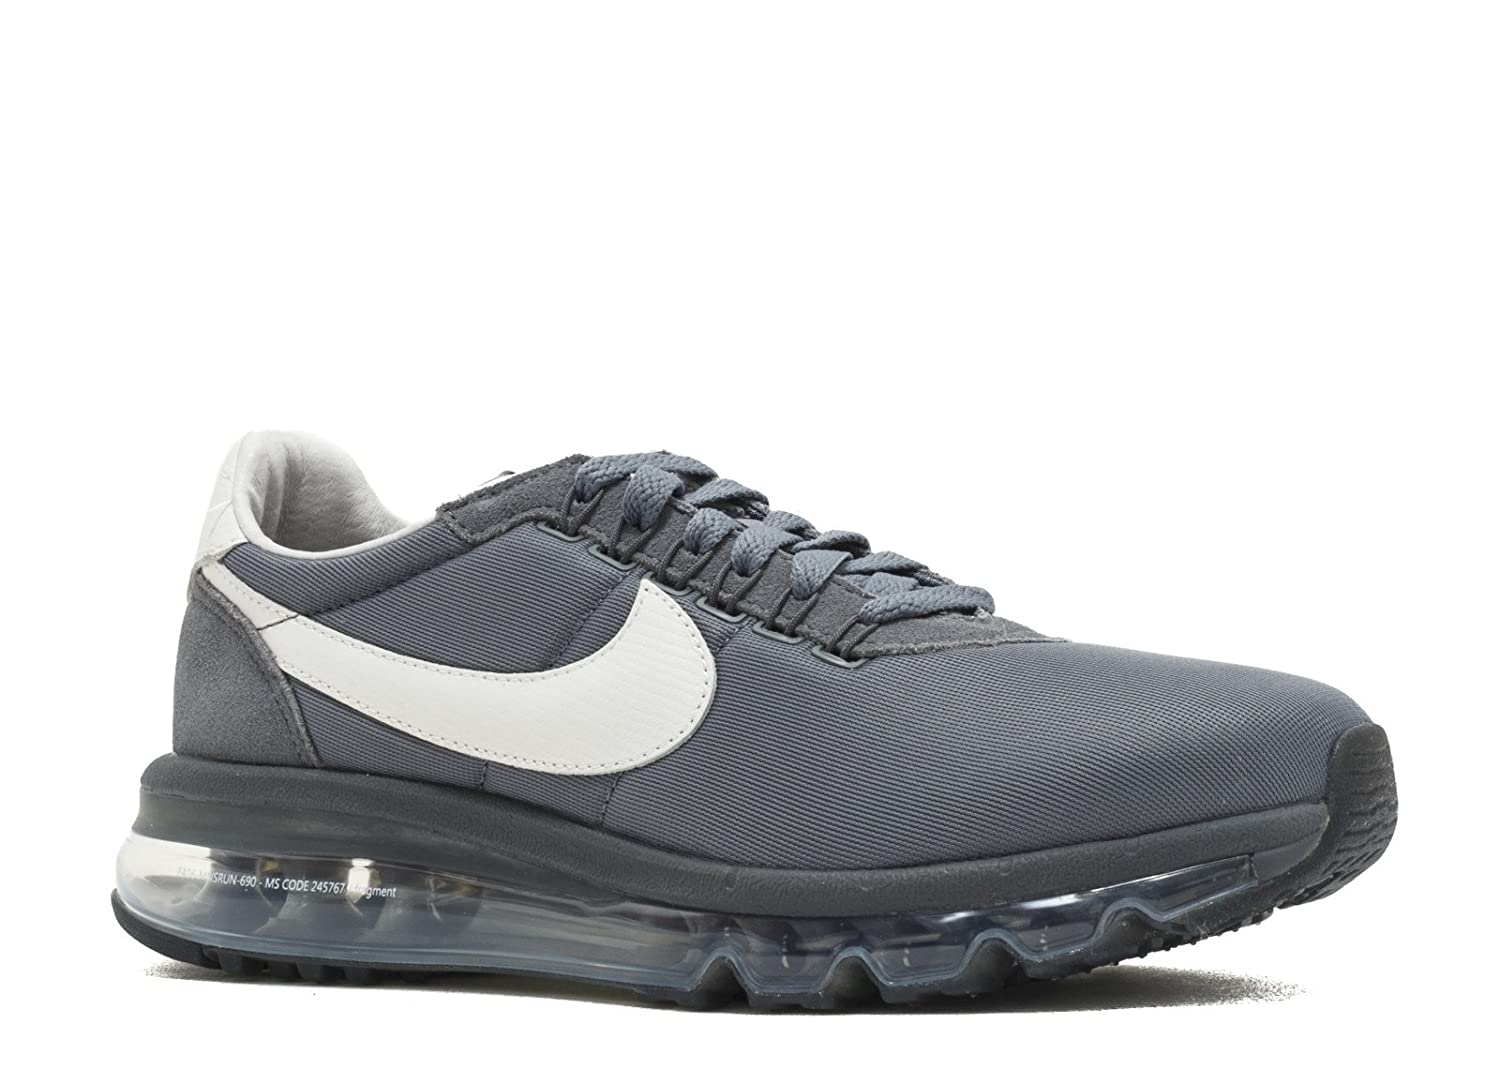 new product d8e37 597cf NIKE AIR MAX LD-Zero 'HTM' - 885893-002: Amazon.co.uk: Shoes ...